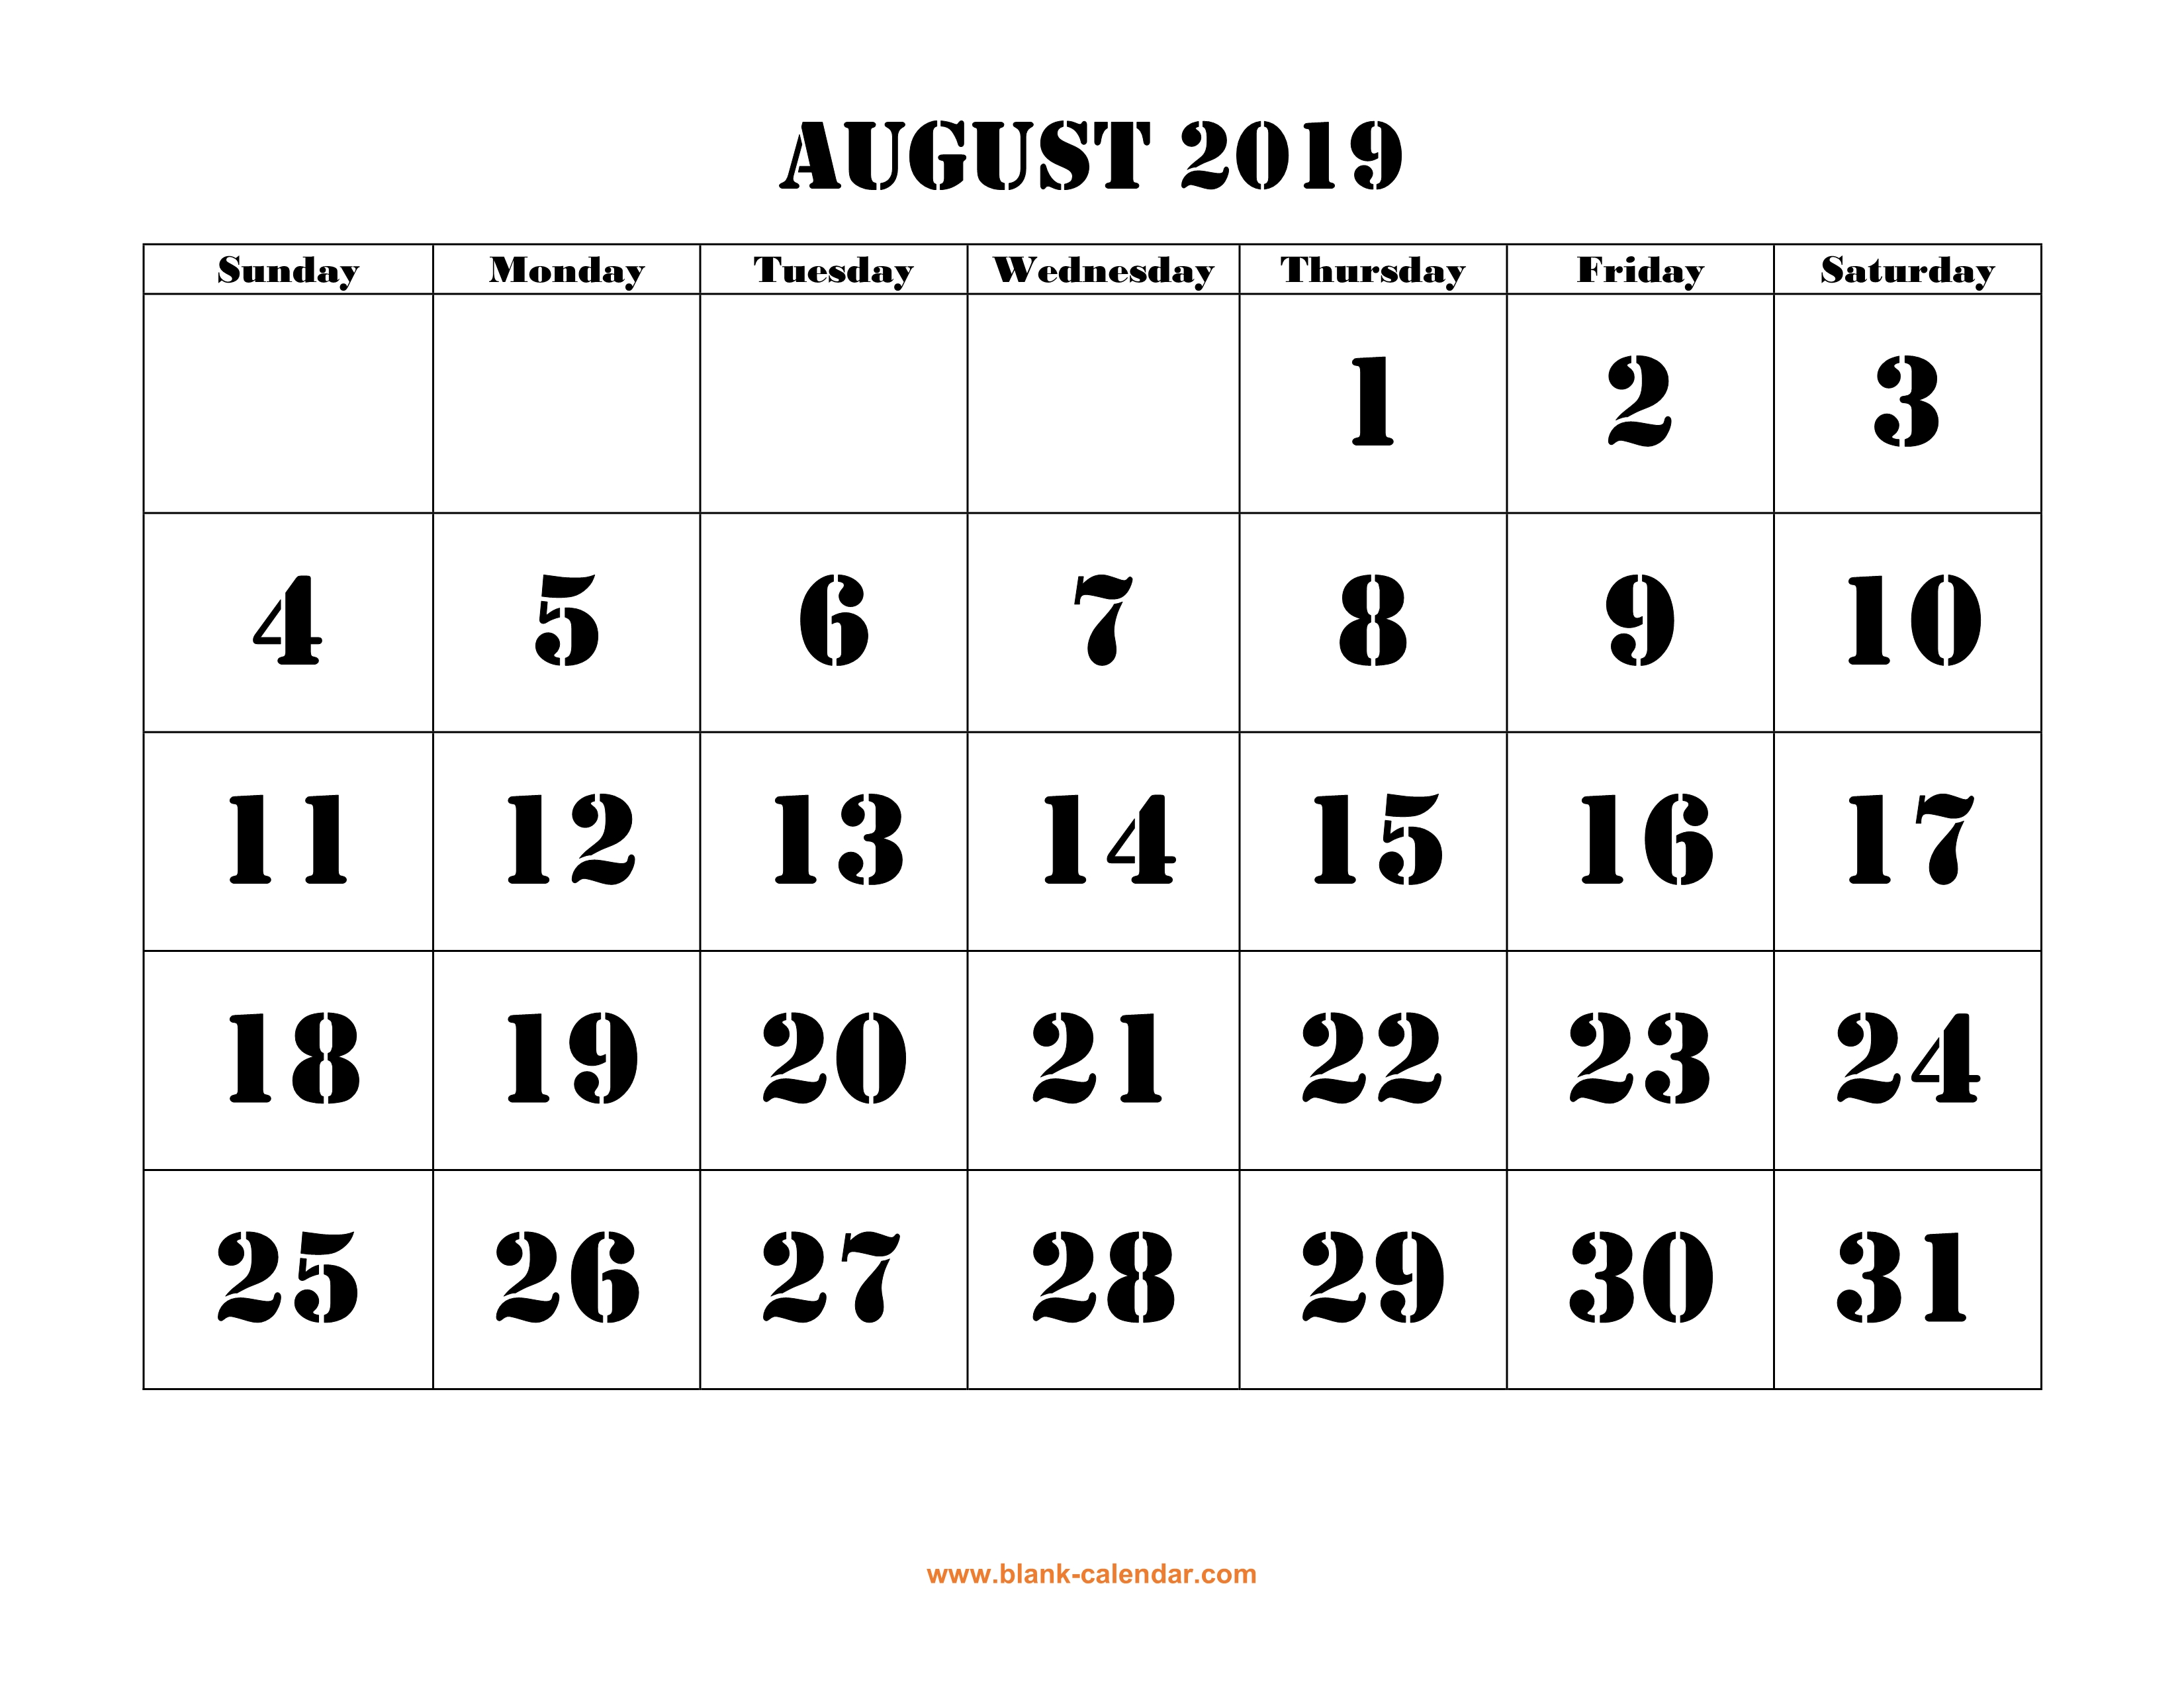 picture relating to Printable August Calendar identify August 2019 Printable Calendar No cost Obtain Month-to-month